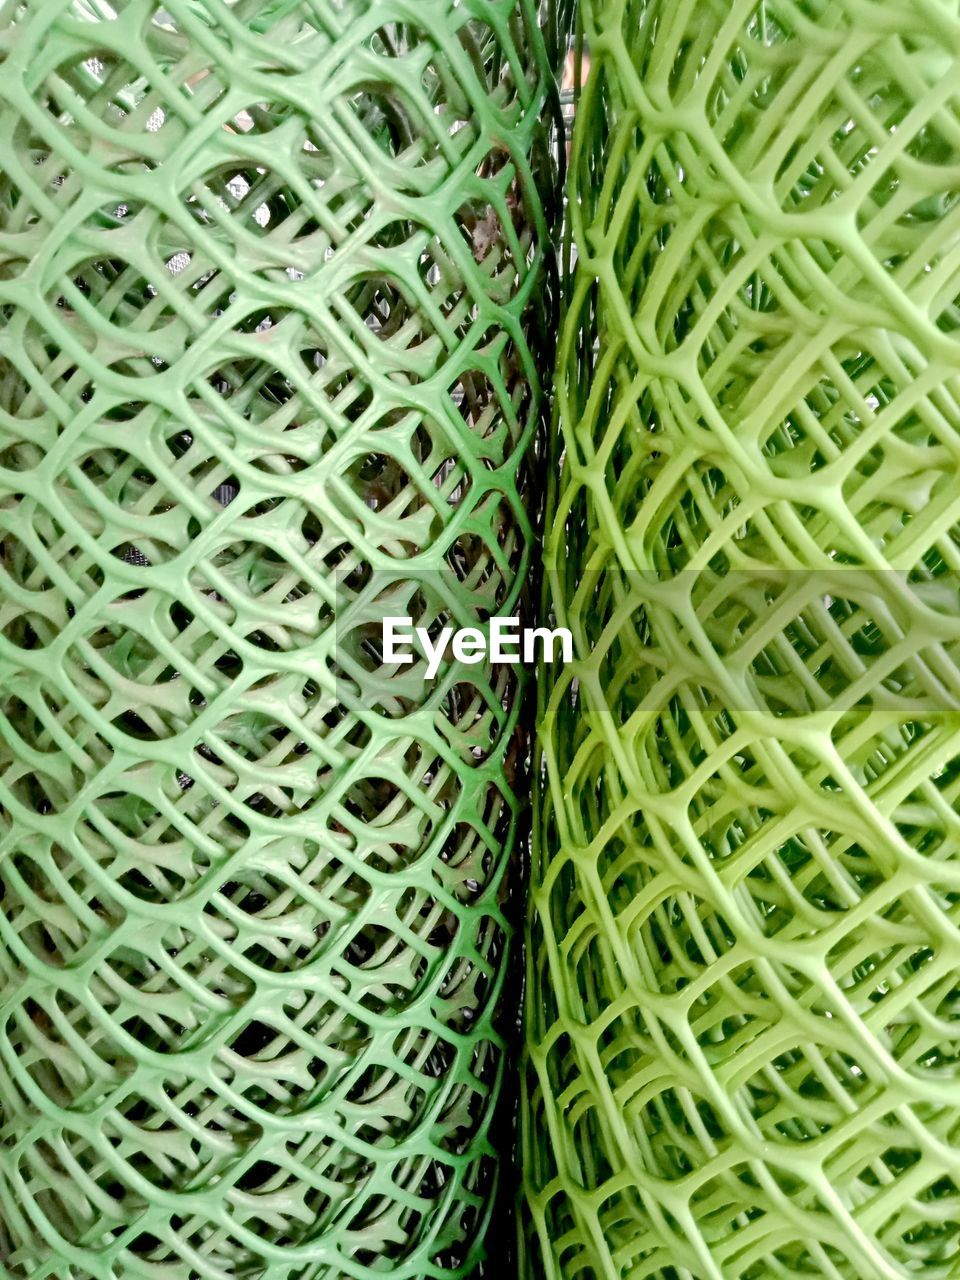 green color, backgrounds, full frame, no people, close-up, pattern, large group of objects, basket, still life, textured, indoors, abundance, high angle view, day, container, healthy eating, communication, food, food and drink, plant